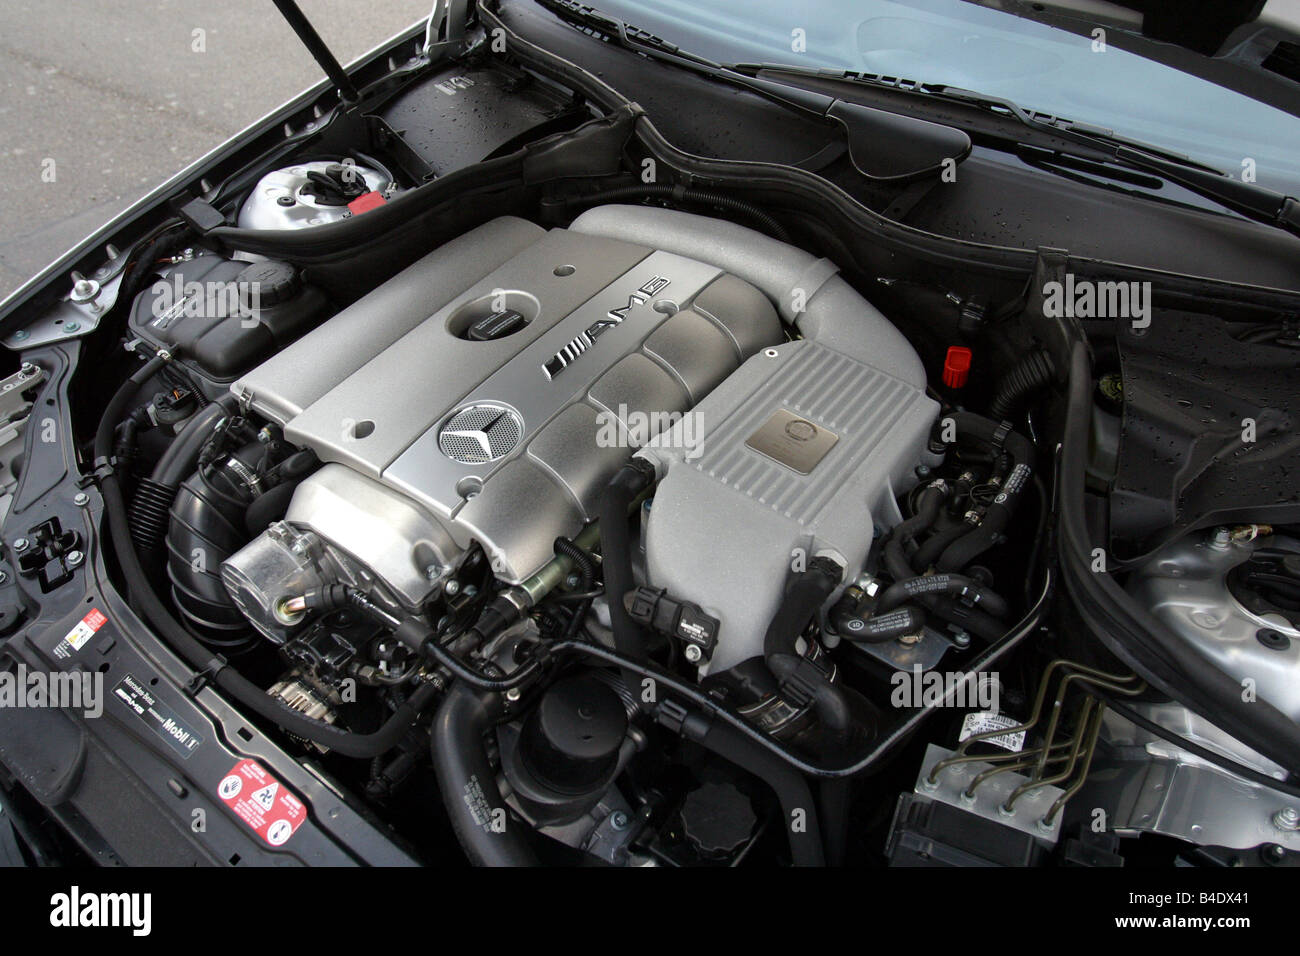 Car, Mercedes C 30 CDI AMG, model year 2002, silver, medium class, Tuning, 231 PS, view in engine compartment, engine, - Stock Image